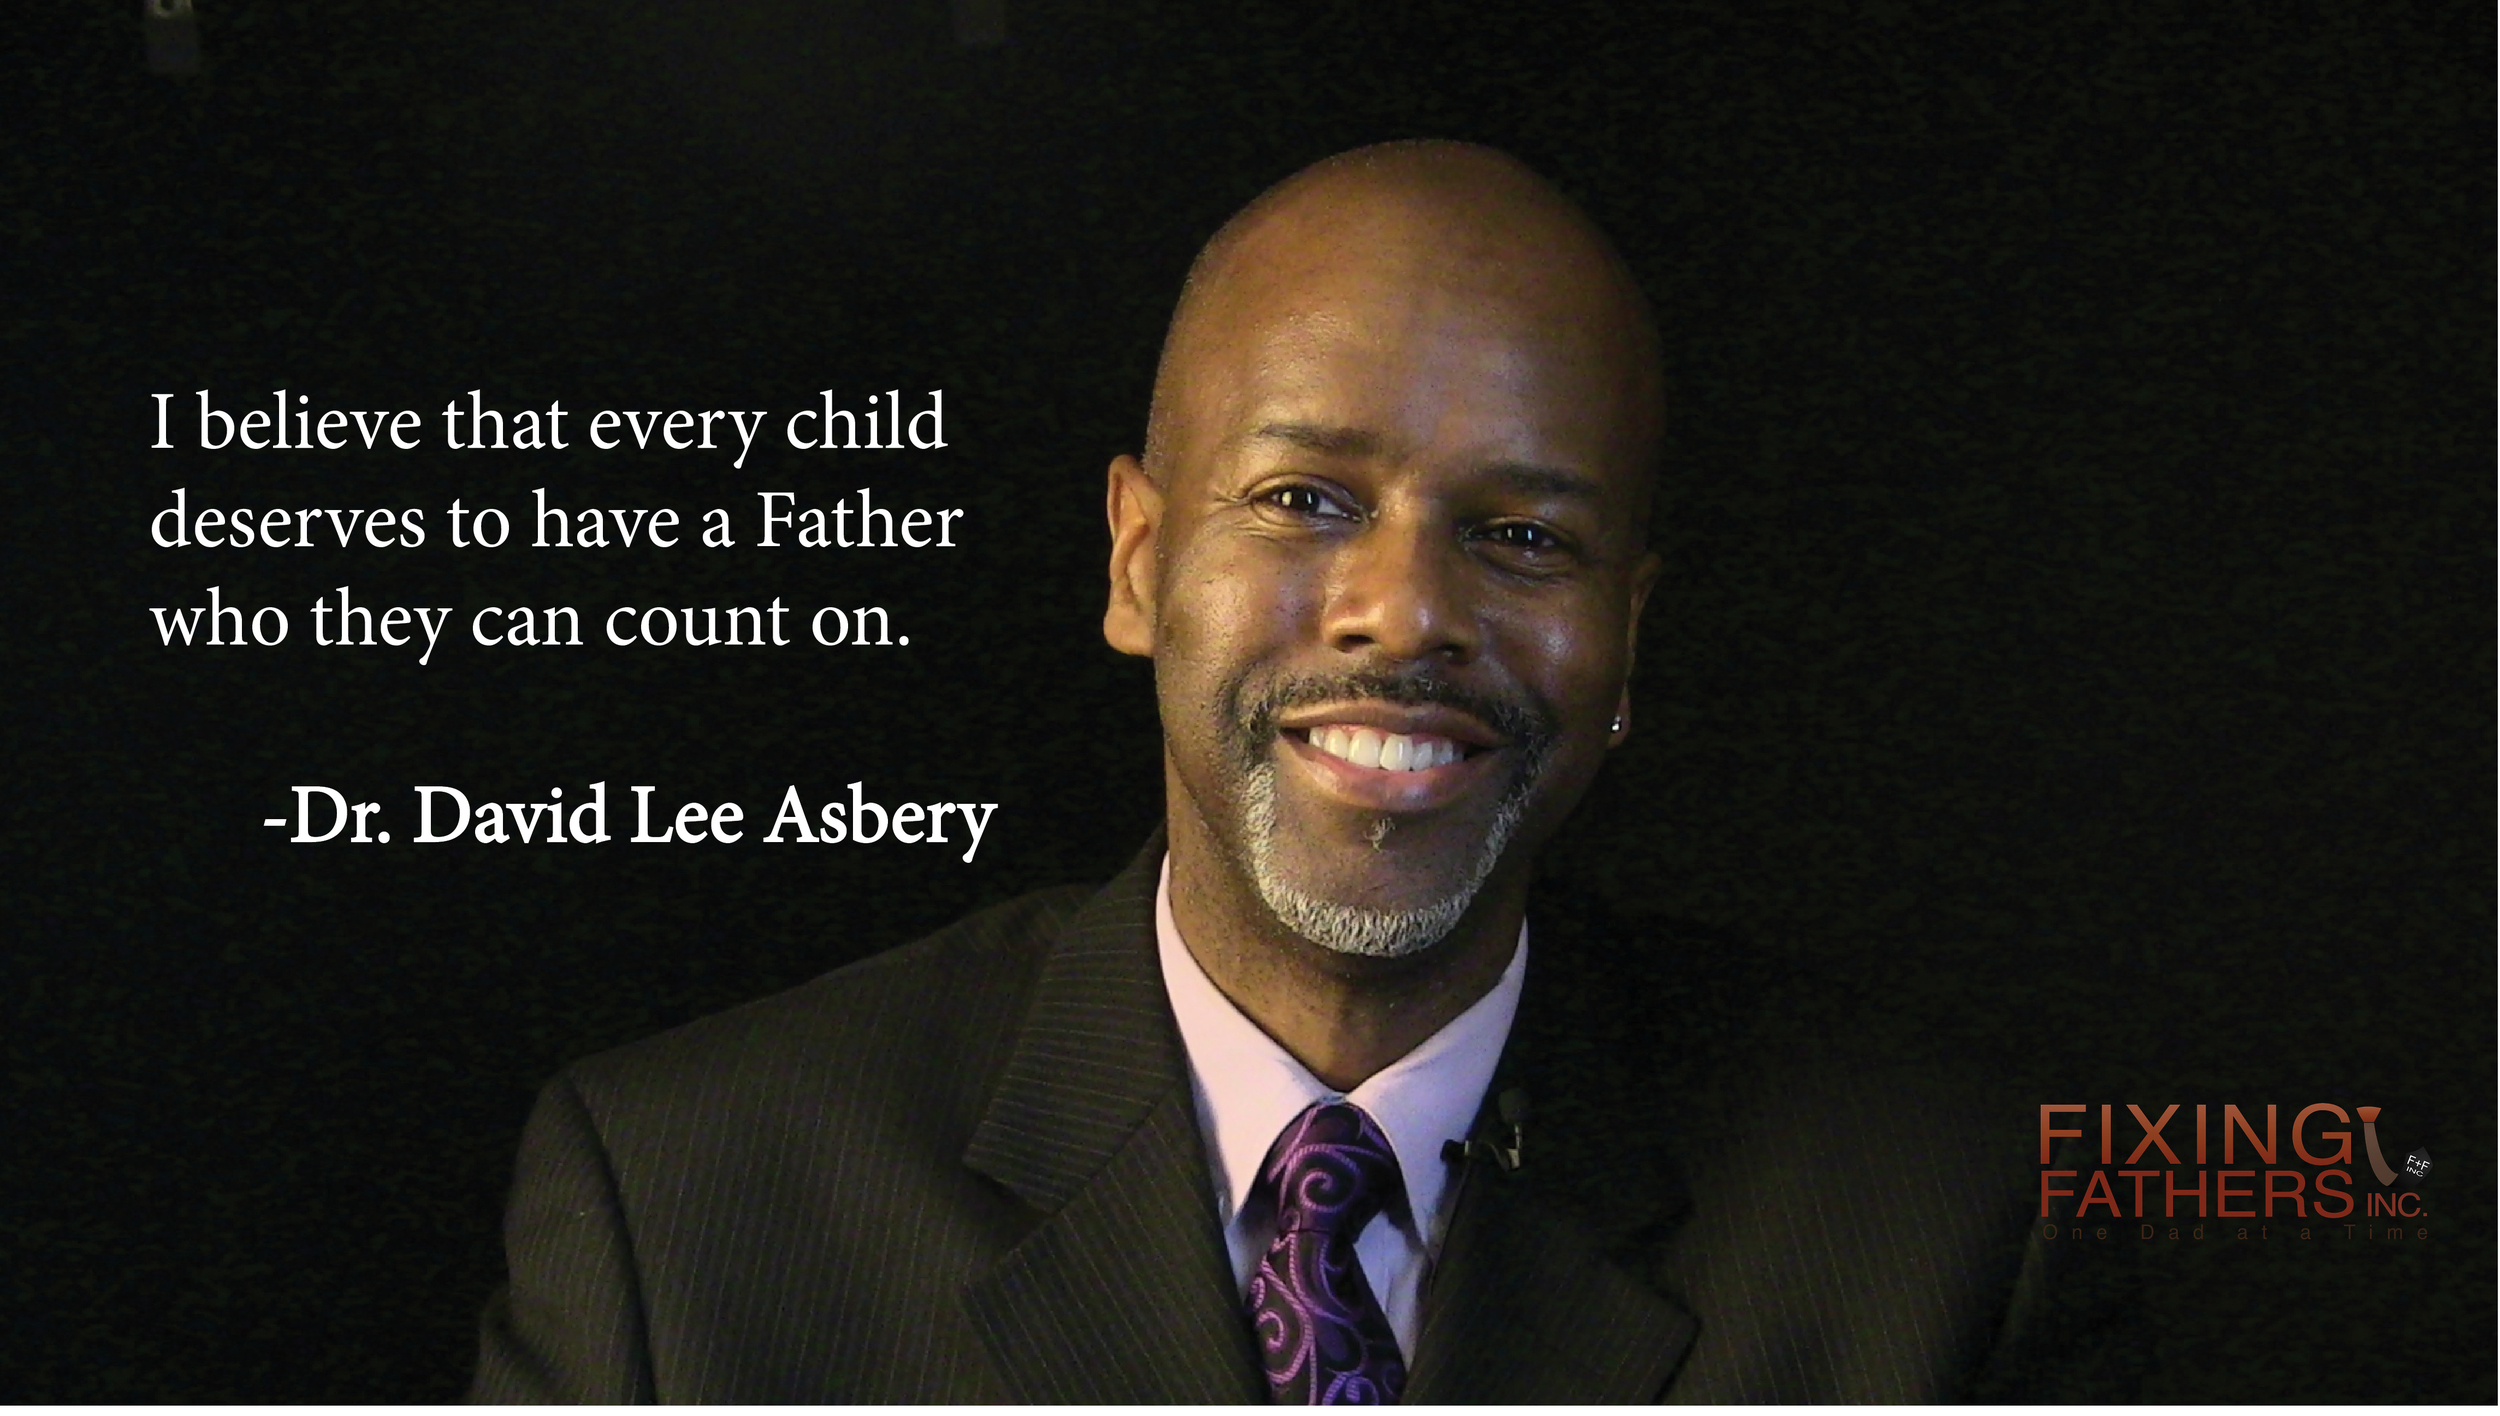 At Fixing Fathers Inc. We live to Laugh, Learn, and Love our children by any means necessary.